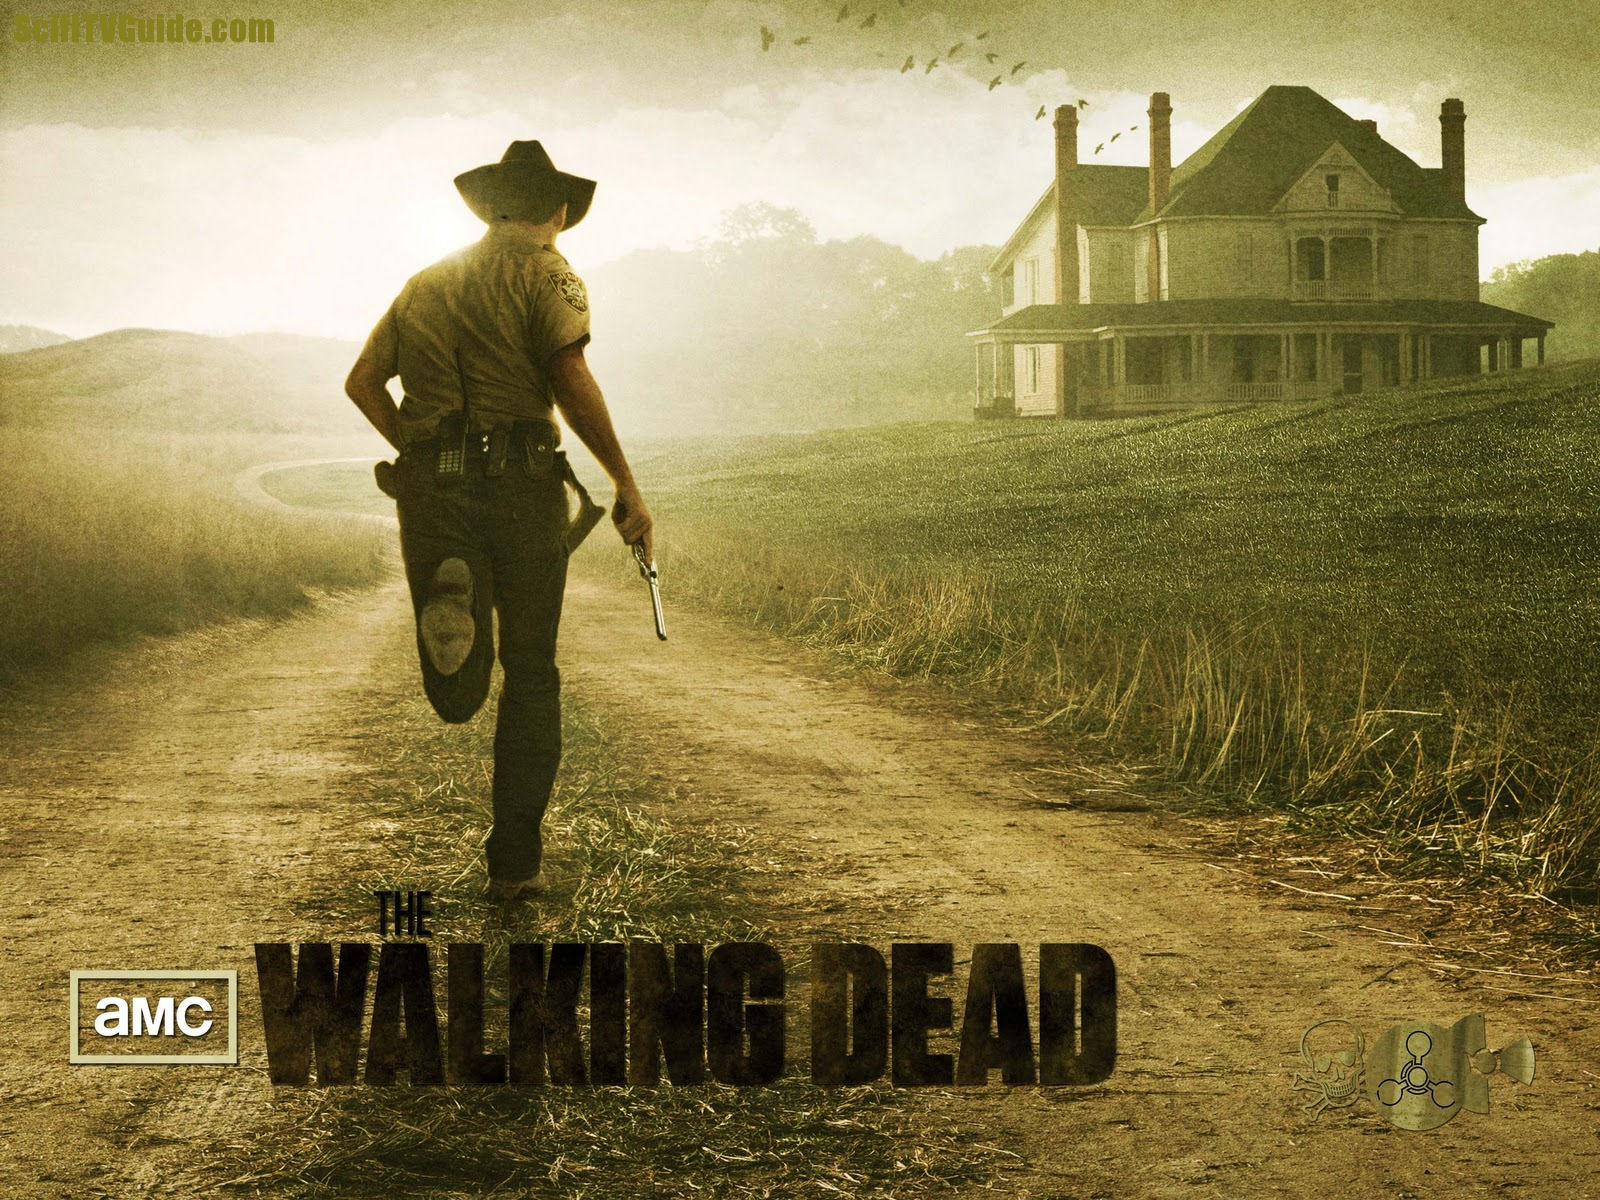 Free Download Full Hd The Walking Dead Wallpaper Full Hd Pictures